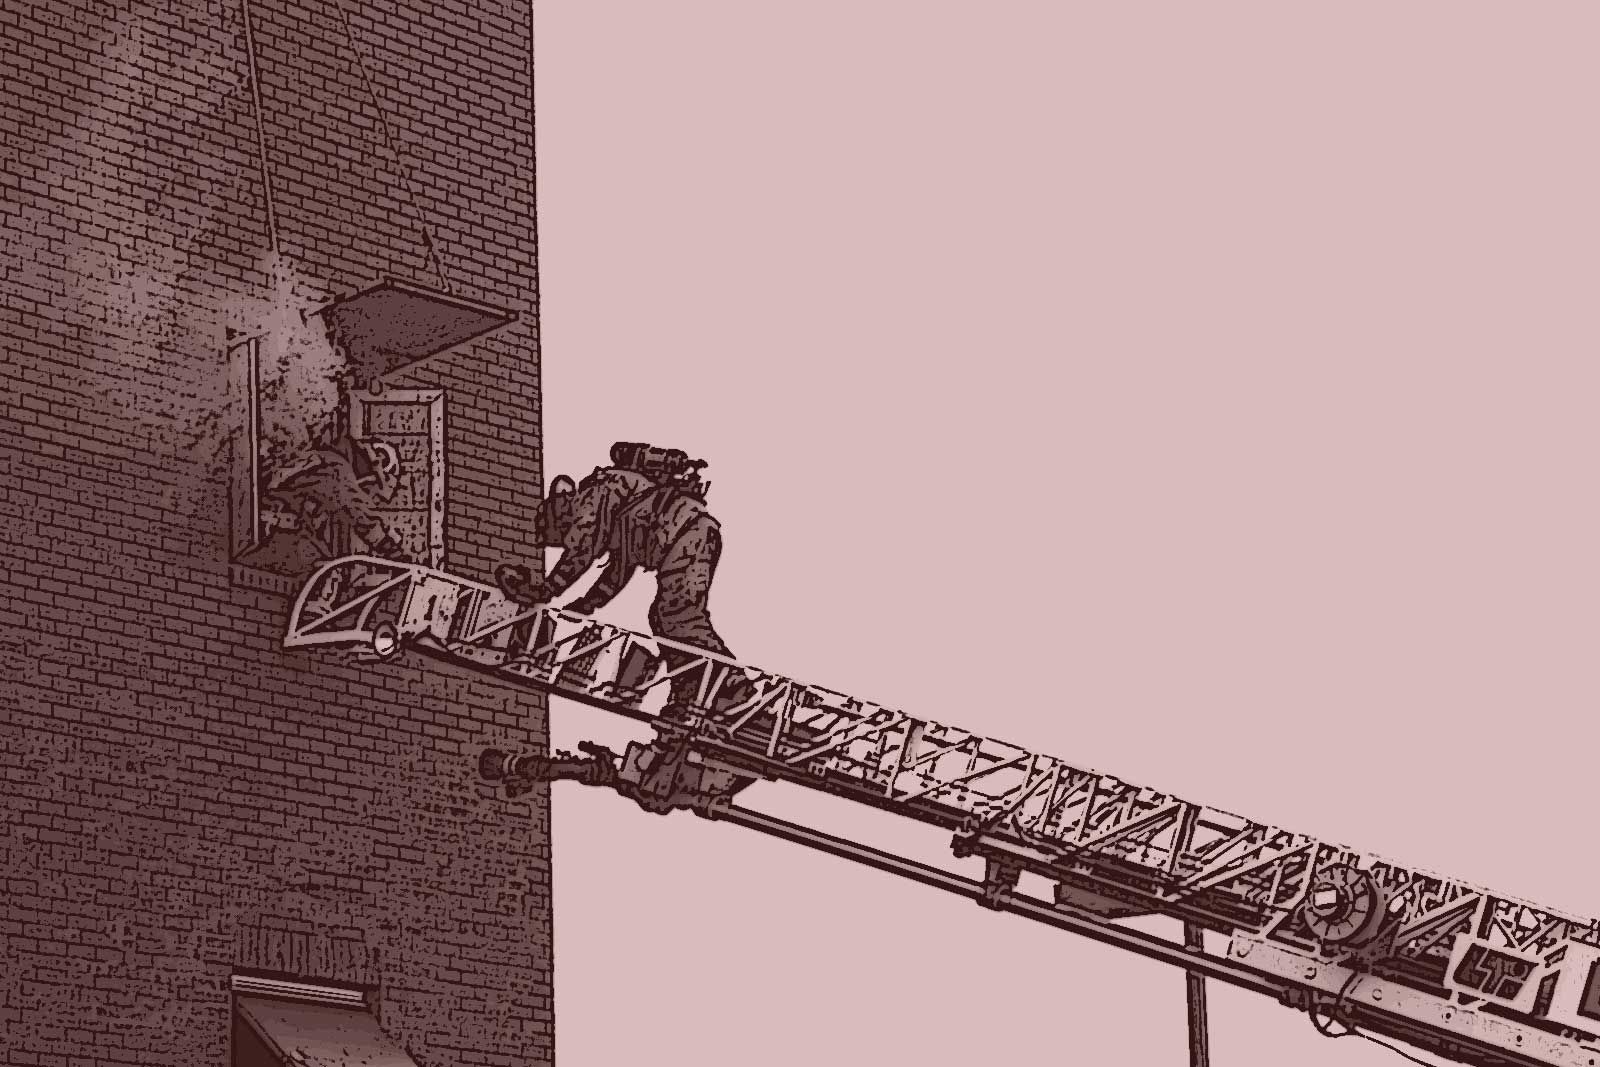 Firefighters climbing an aerial ladder